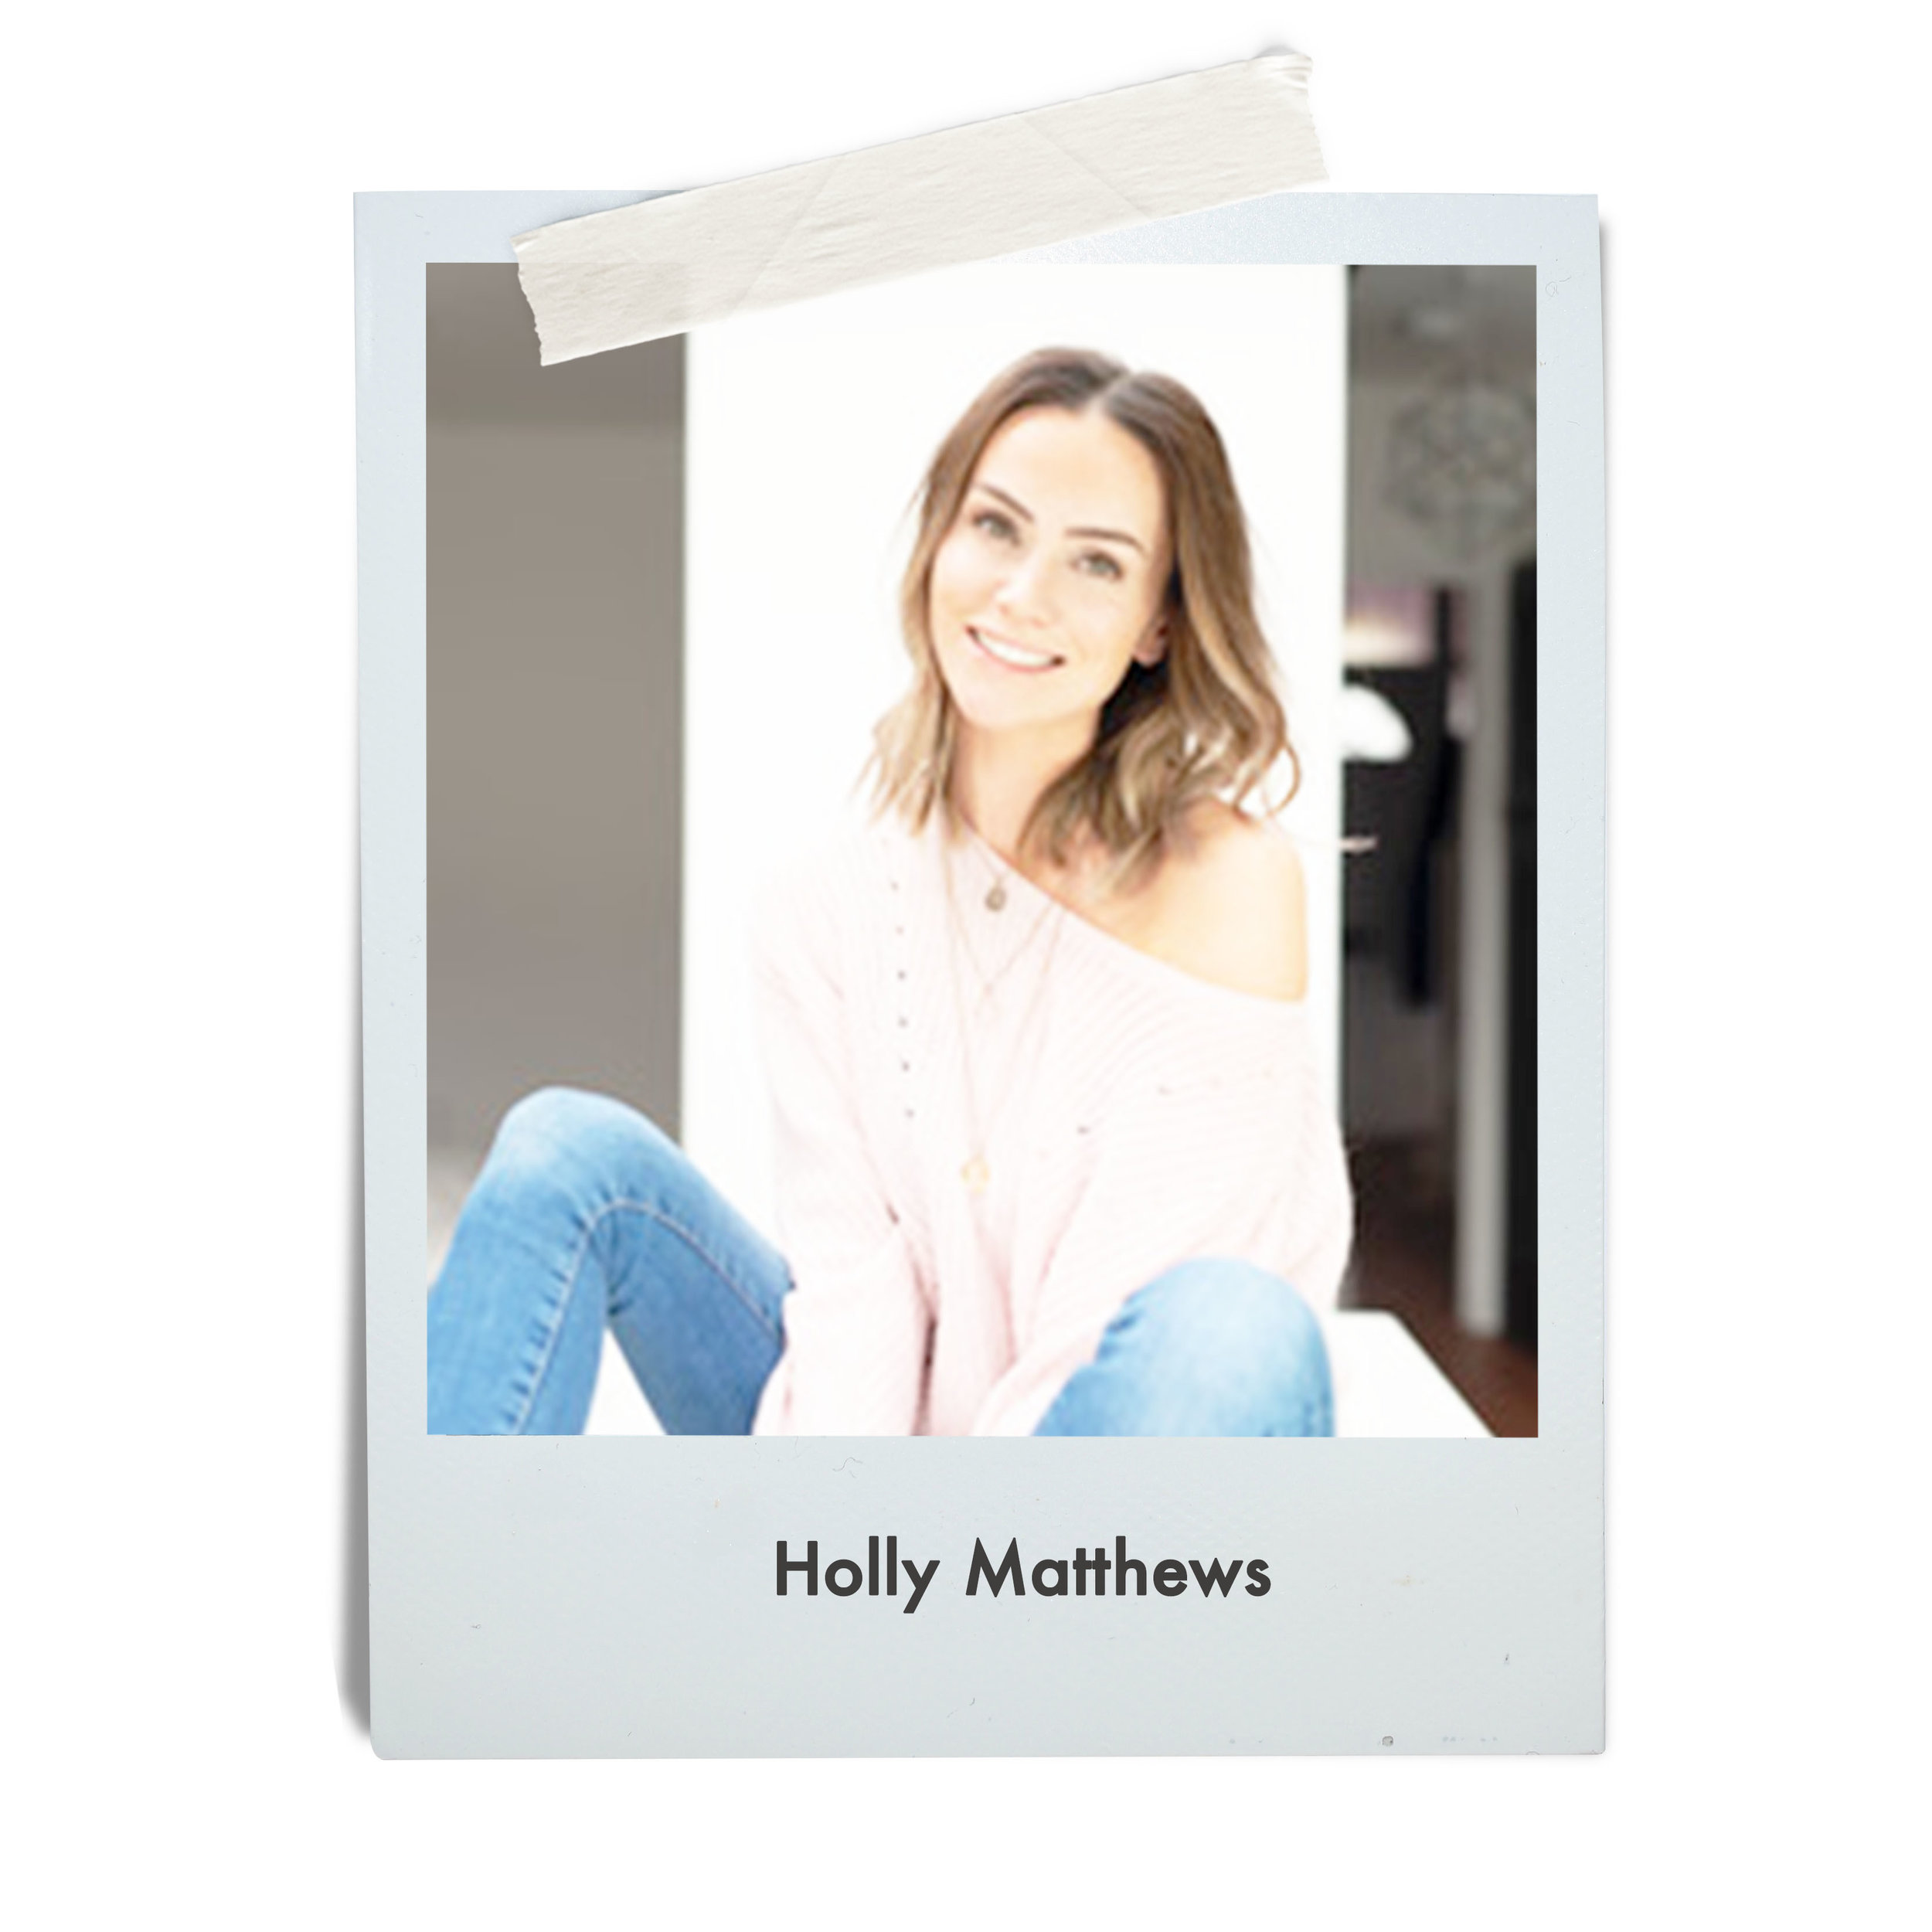 Holly Matthews copy.jpg